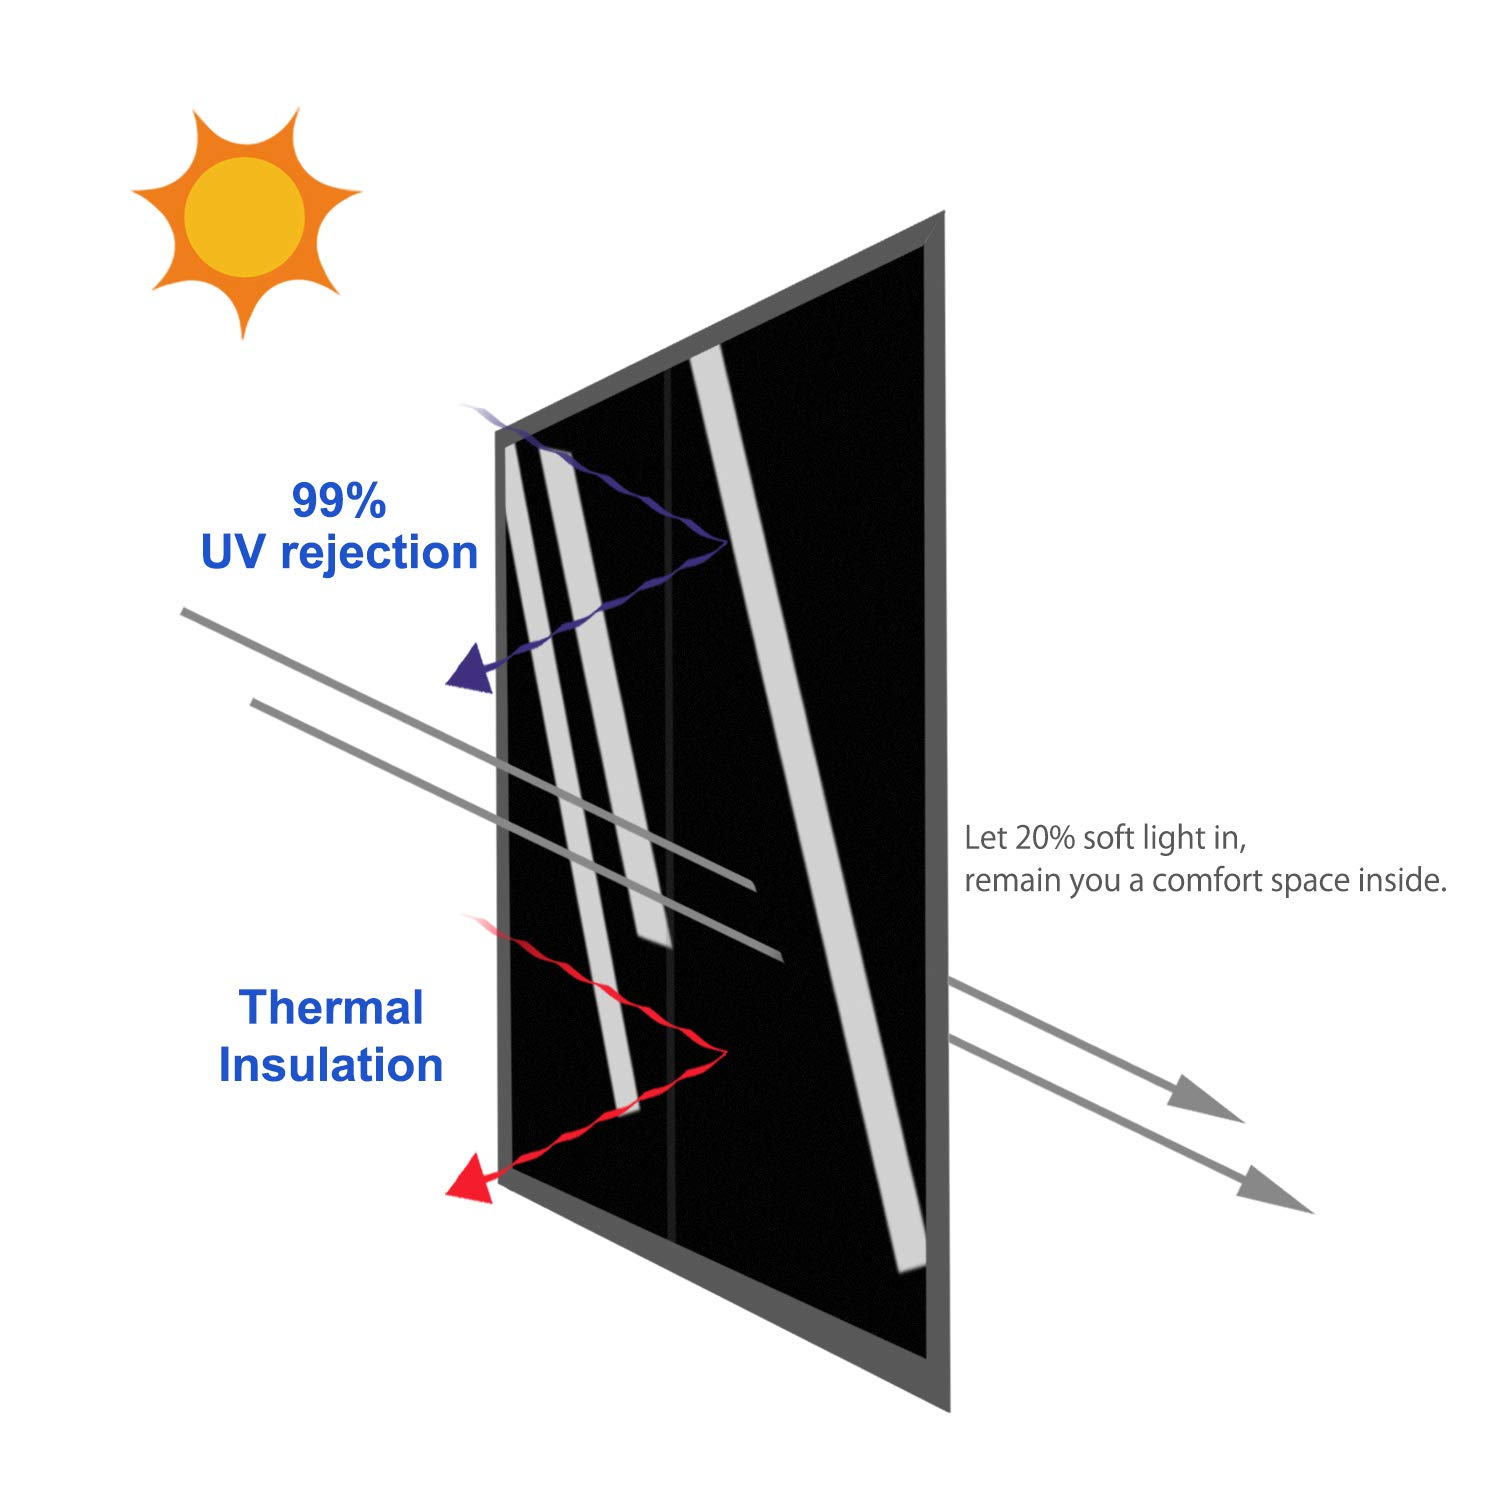 Privacy Static Cling Window Film 100/% Light Blocking Darkening Removal Decorate Heat Control Glass Tint for Home Room Office Windows(45 200cm) Uiter Blackout Window Film